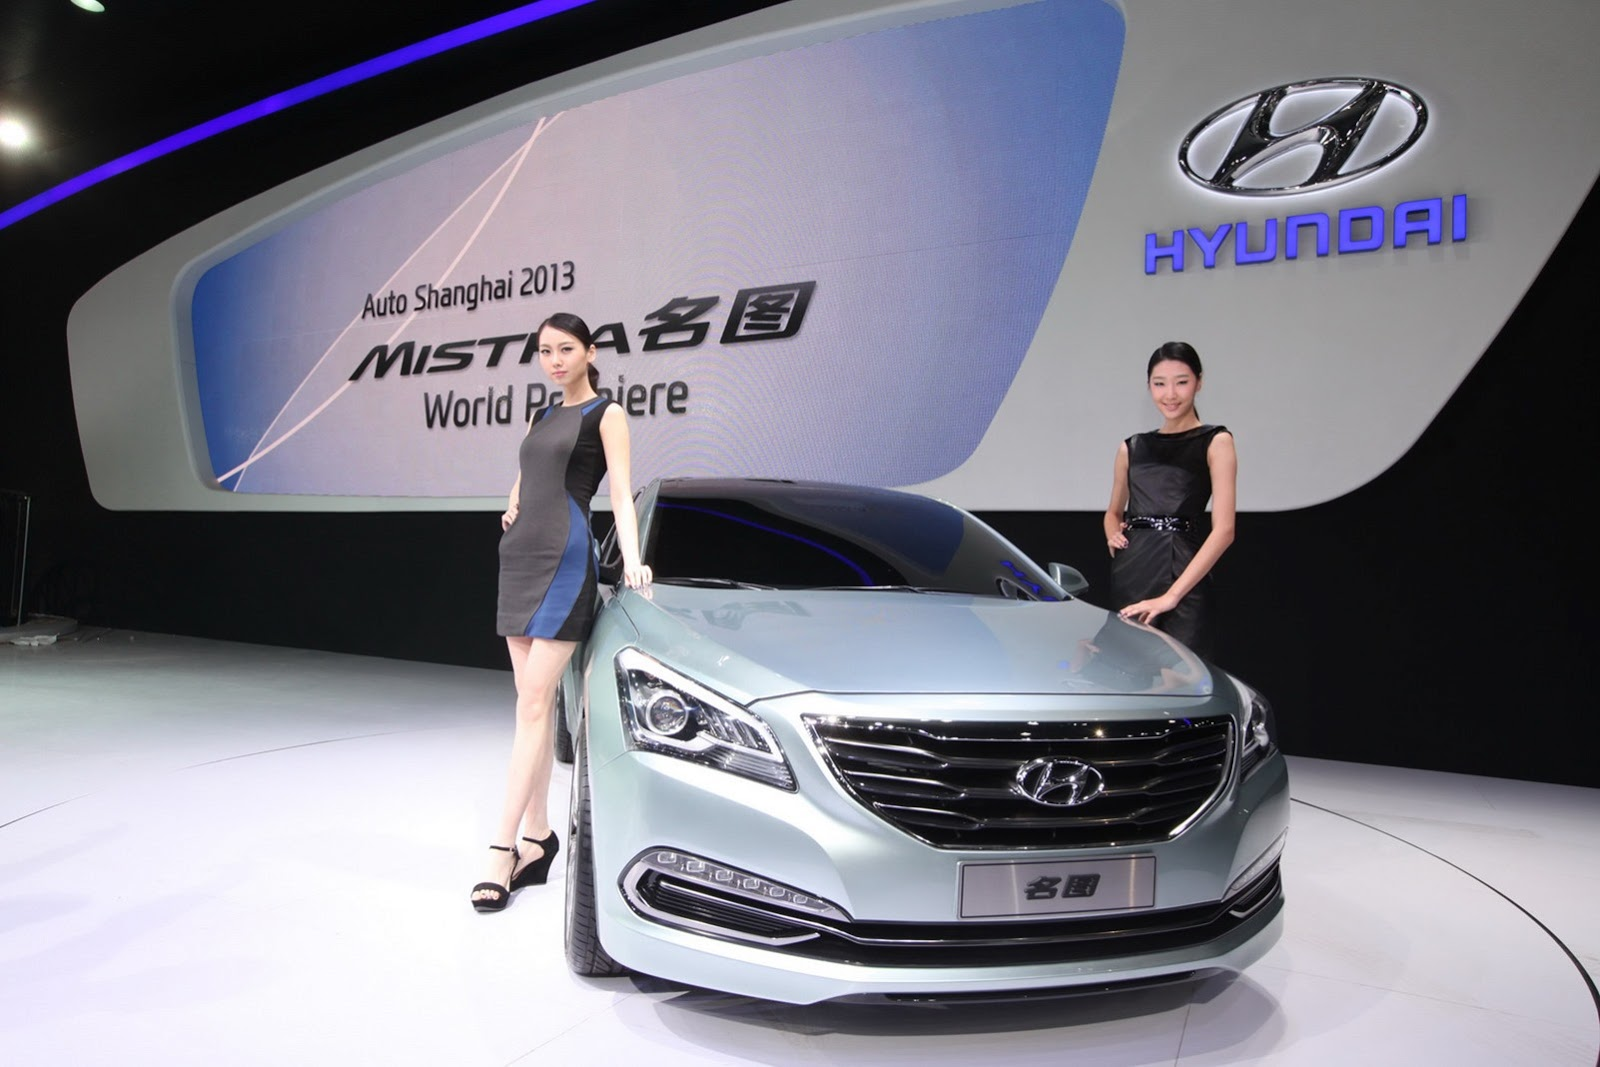 Hyundai Motor recently launched the Mistra, solely for targeting the Chinese market.